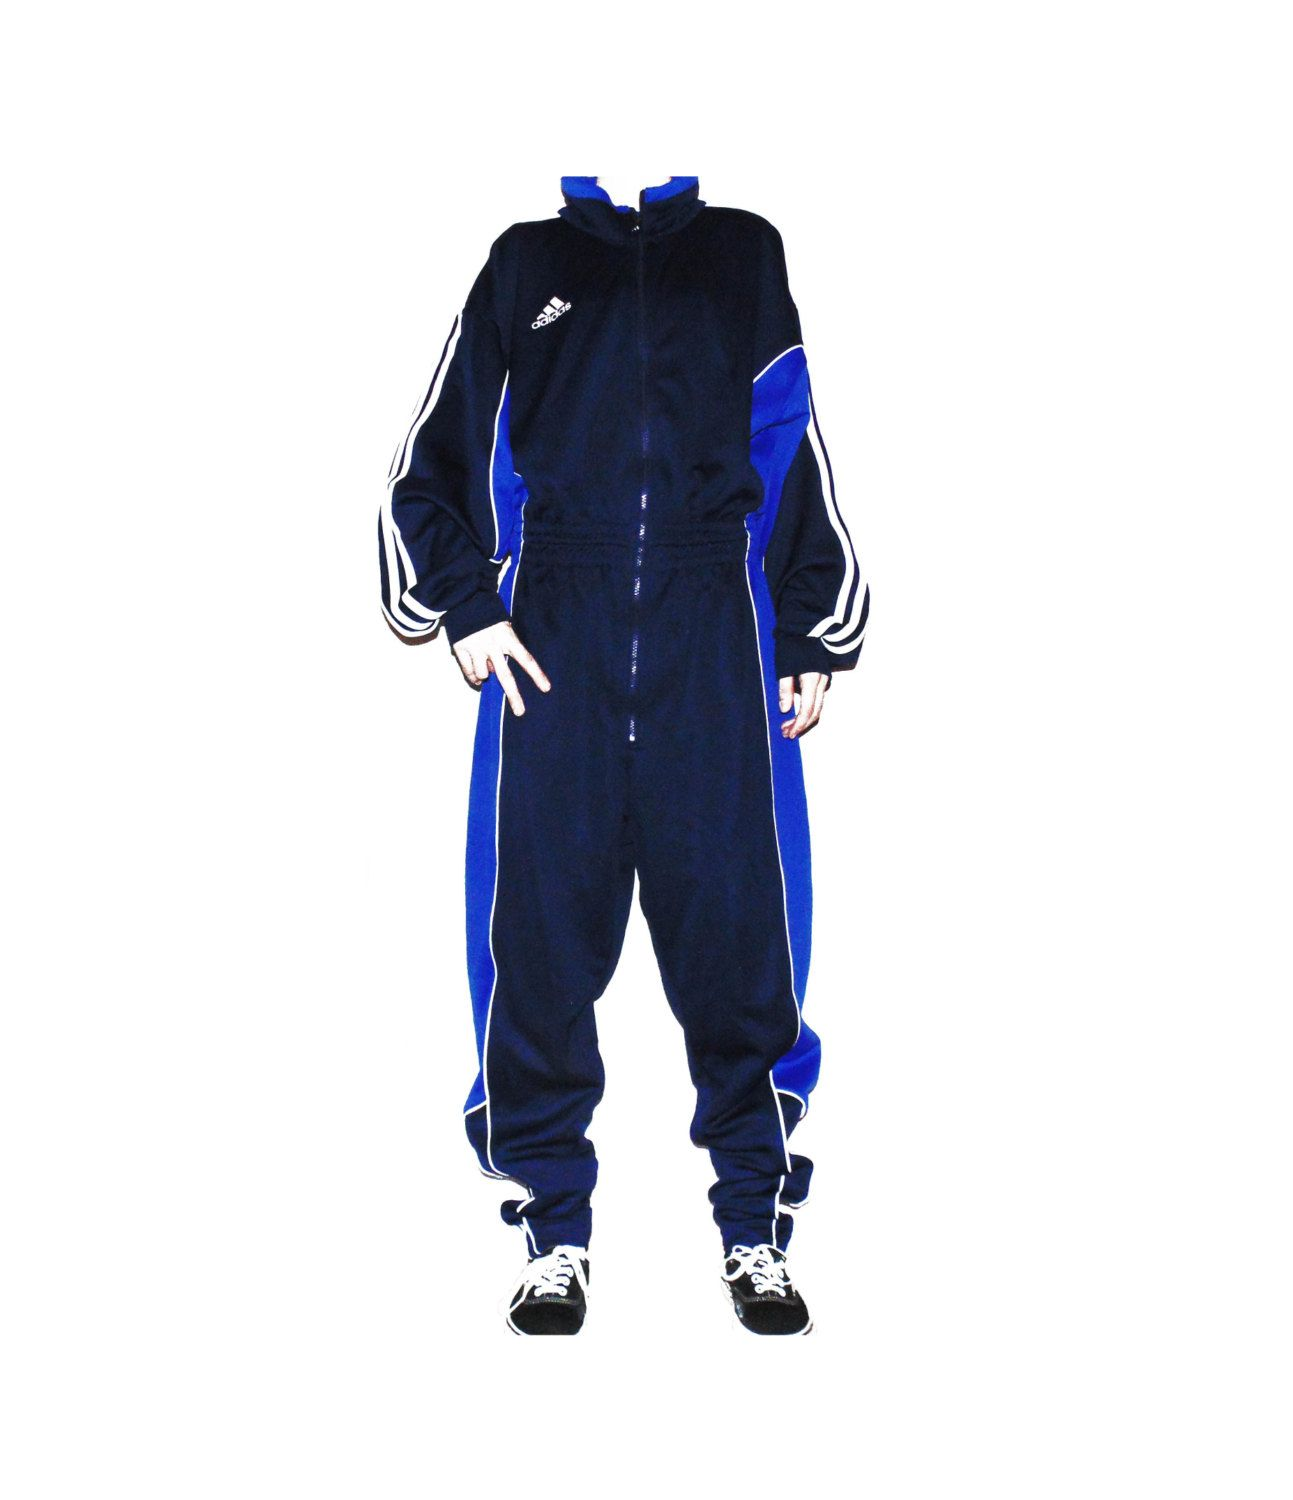 34fe9e4a90f ADIDAS free size vintage retro tracksuit   adidas overall   adidas jumpsuit    80s old school adidas M-L-XL men jumpsuit blue adidas (47.00 EUR) by  SunnyCsc